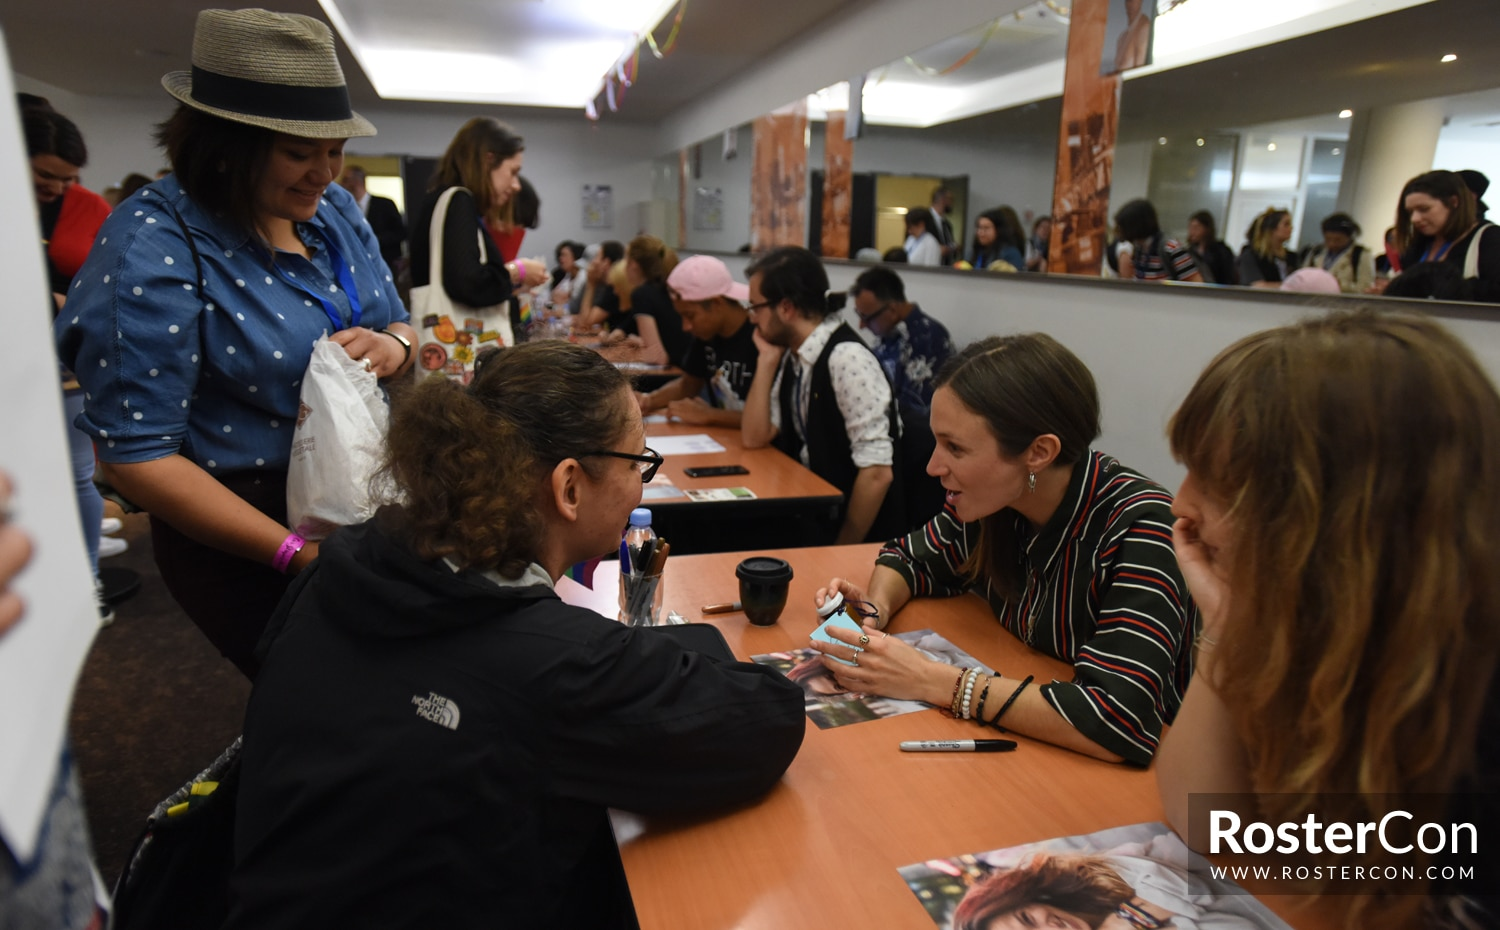 Dominique Provost-Chalkley - Our Stripes Are Beautiful - Wynonna Earp